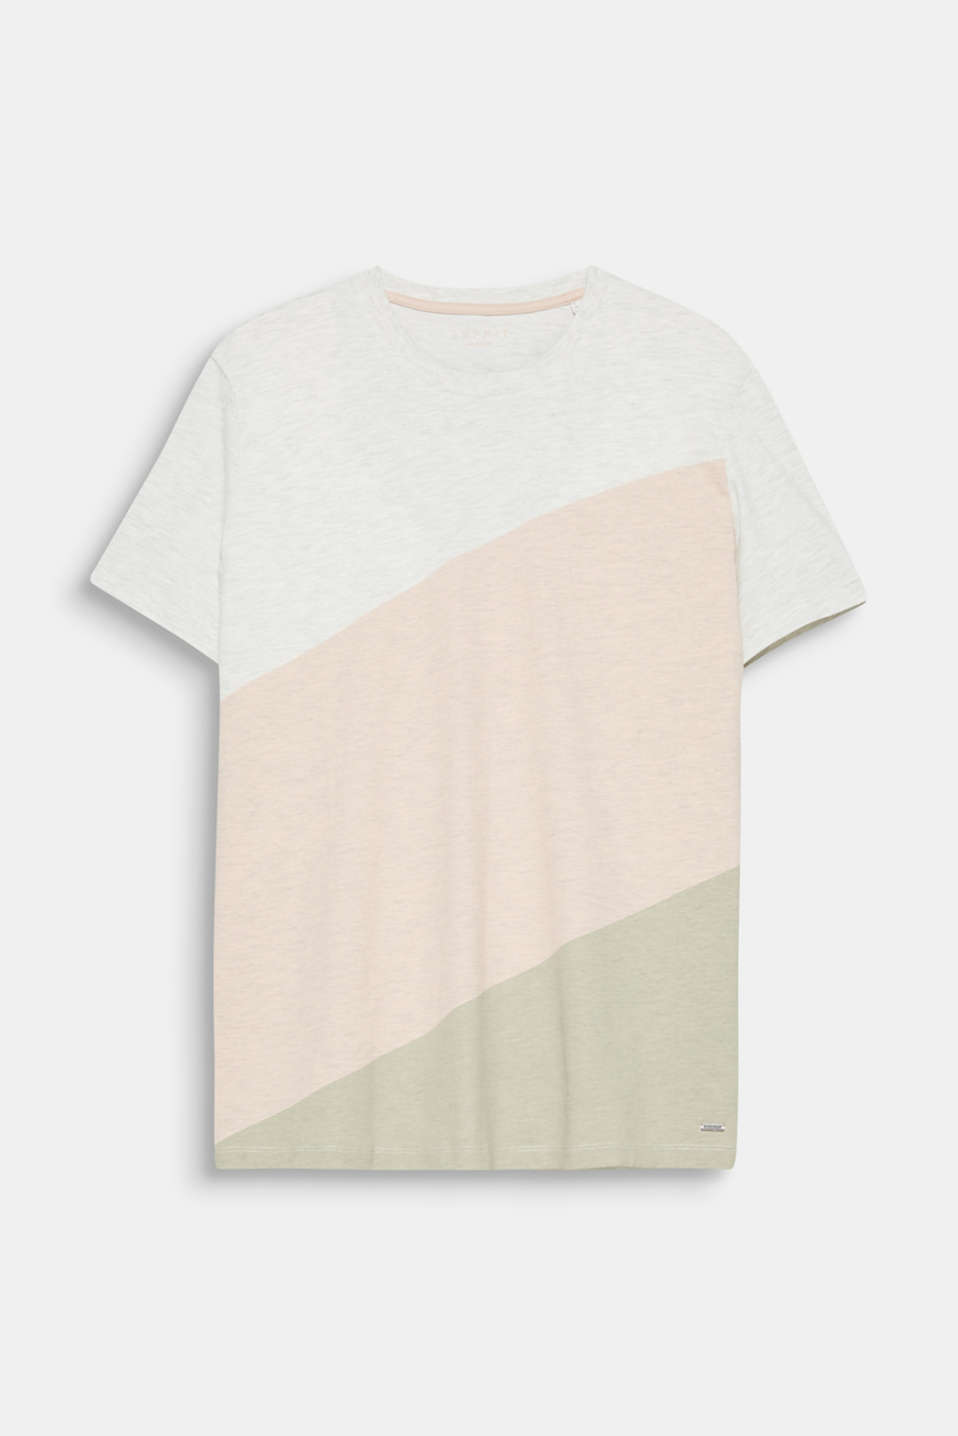 We love colour blocking! The diagonal block stripes make this T-shirt super stylish and eye-catching.